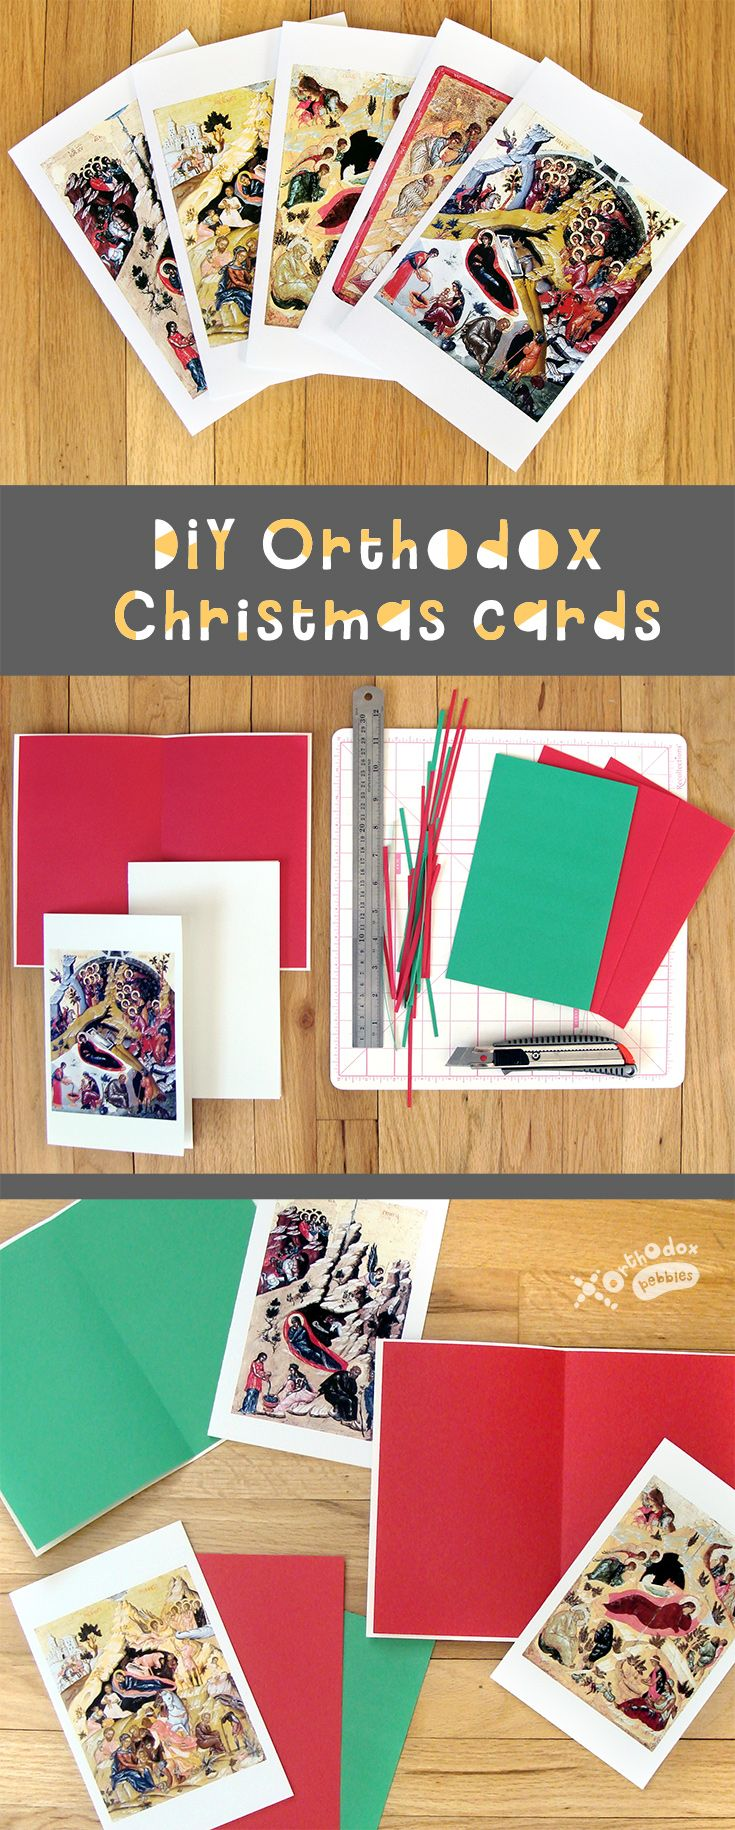 Use Our Free Printables To Make Beautiful Orthodox Christmas Cards